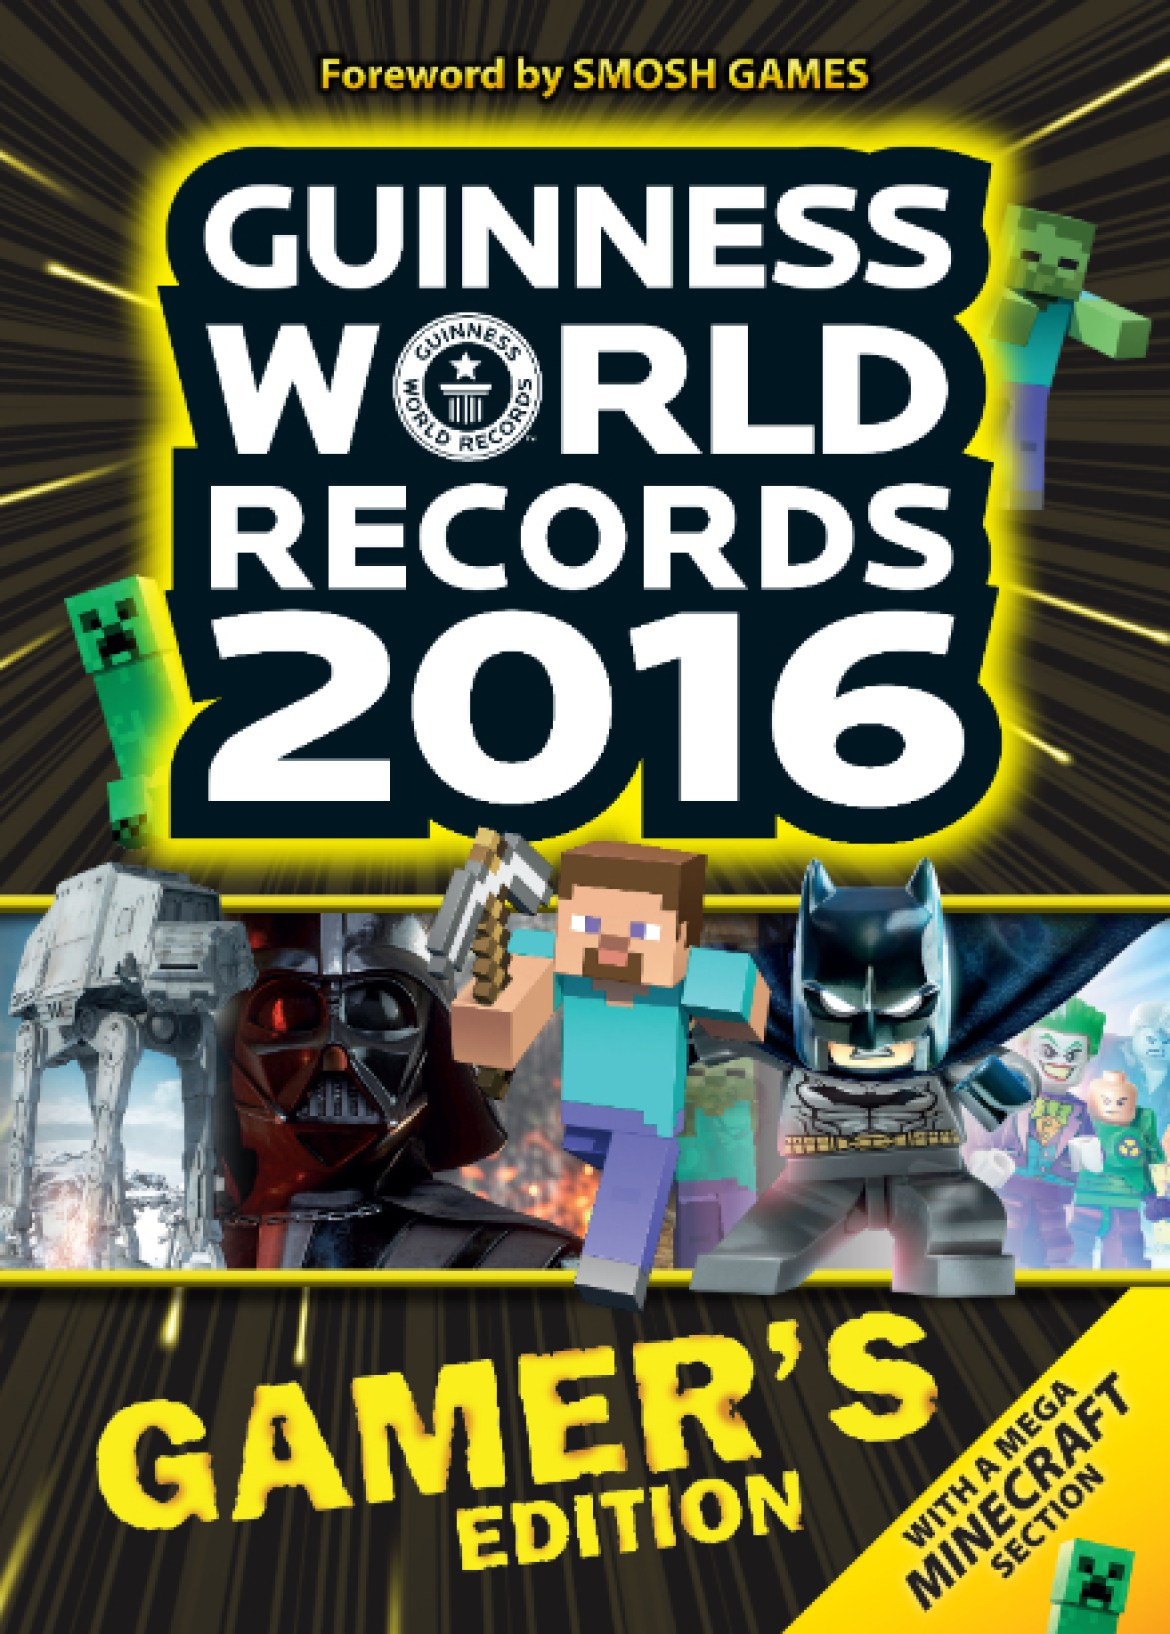 GWR Gamers 2016_Front-300dpi